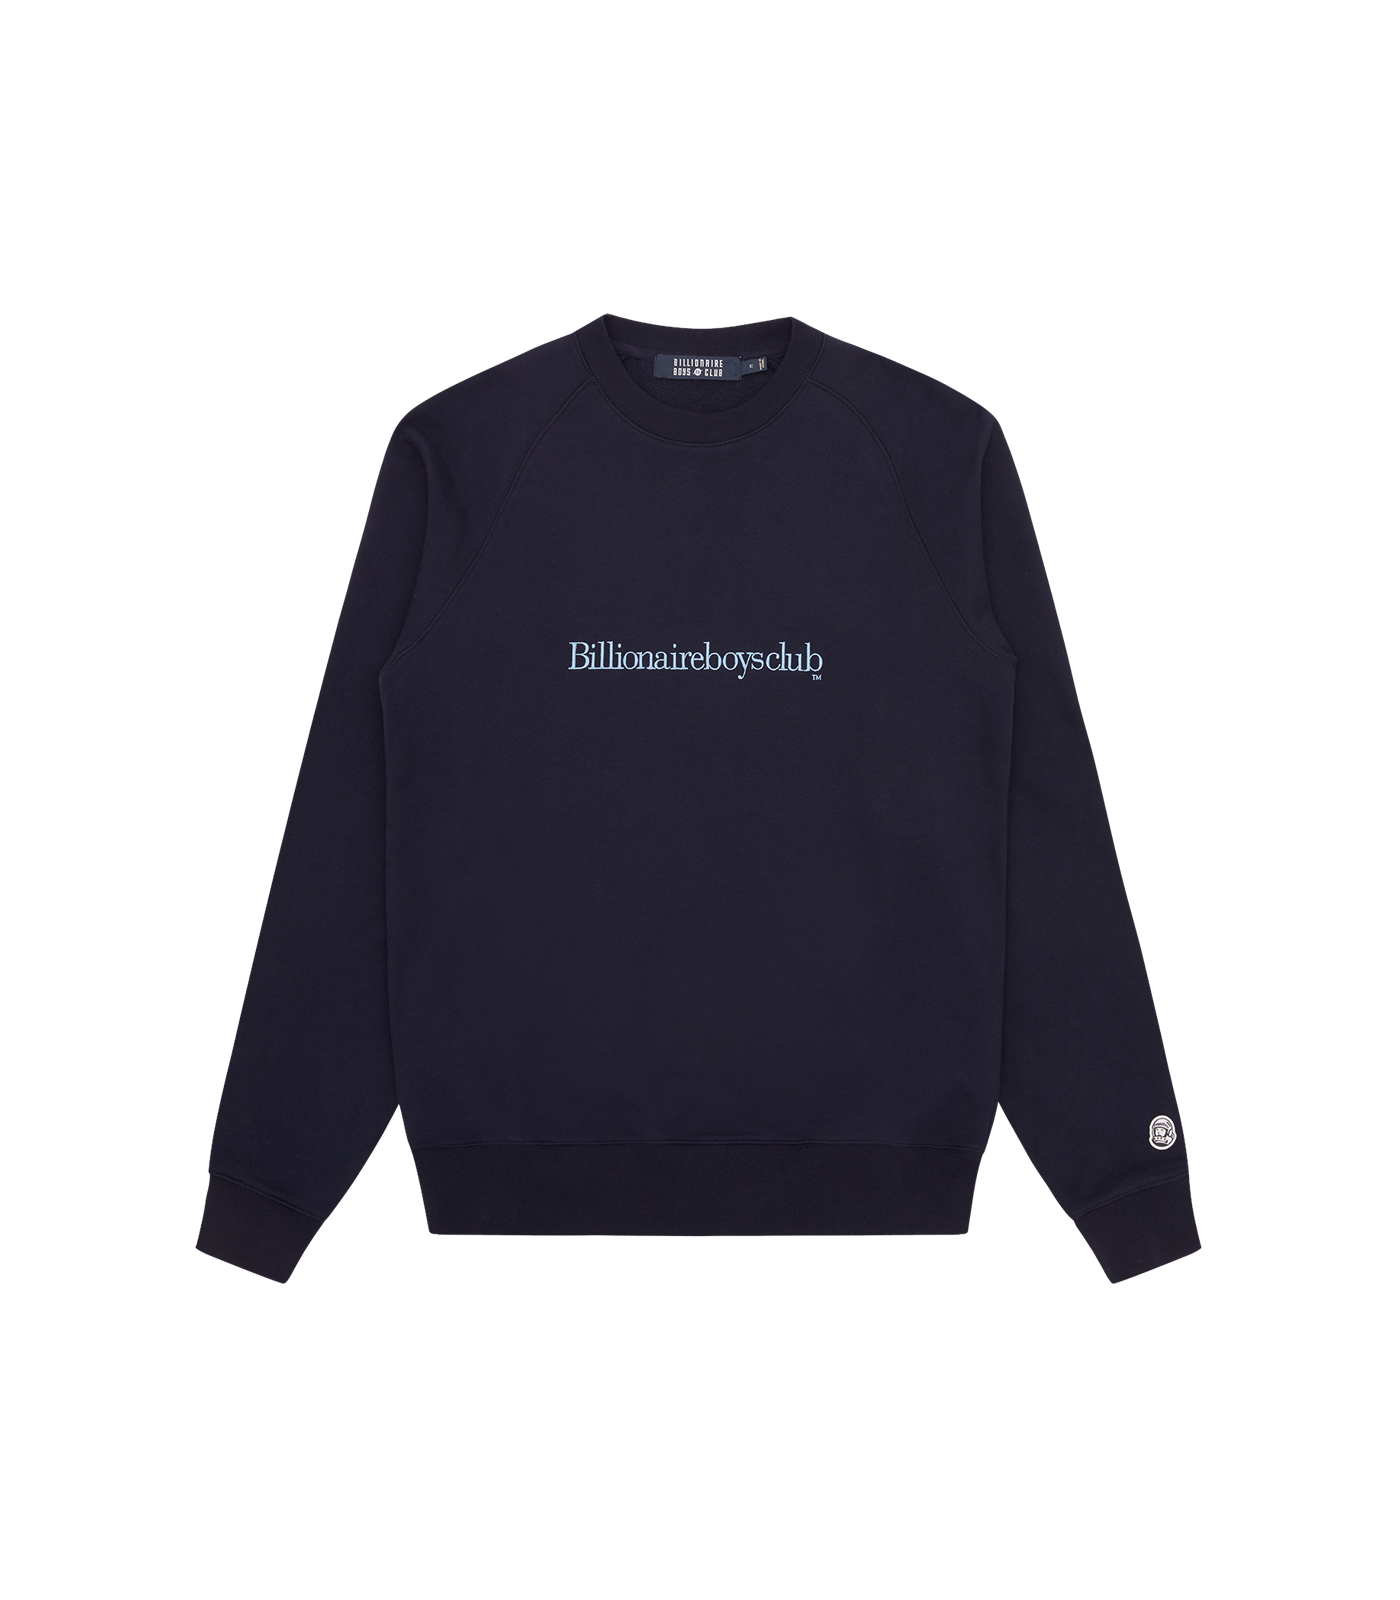 EMBROIDERED LOGO CREWNECK - NAVY/BLUE